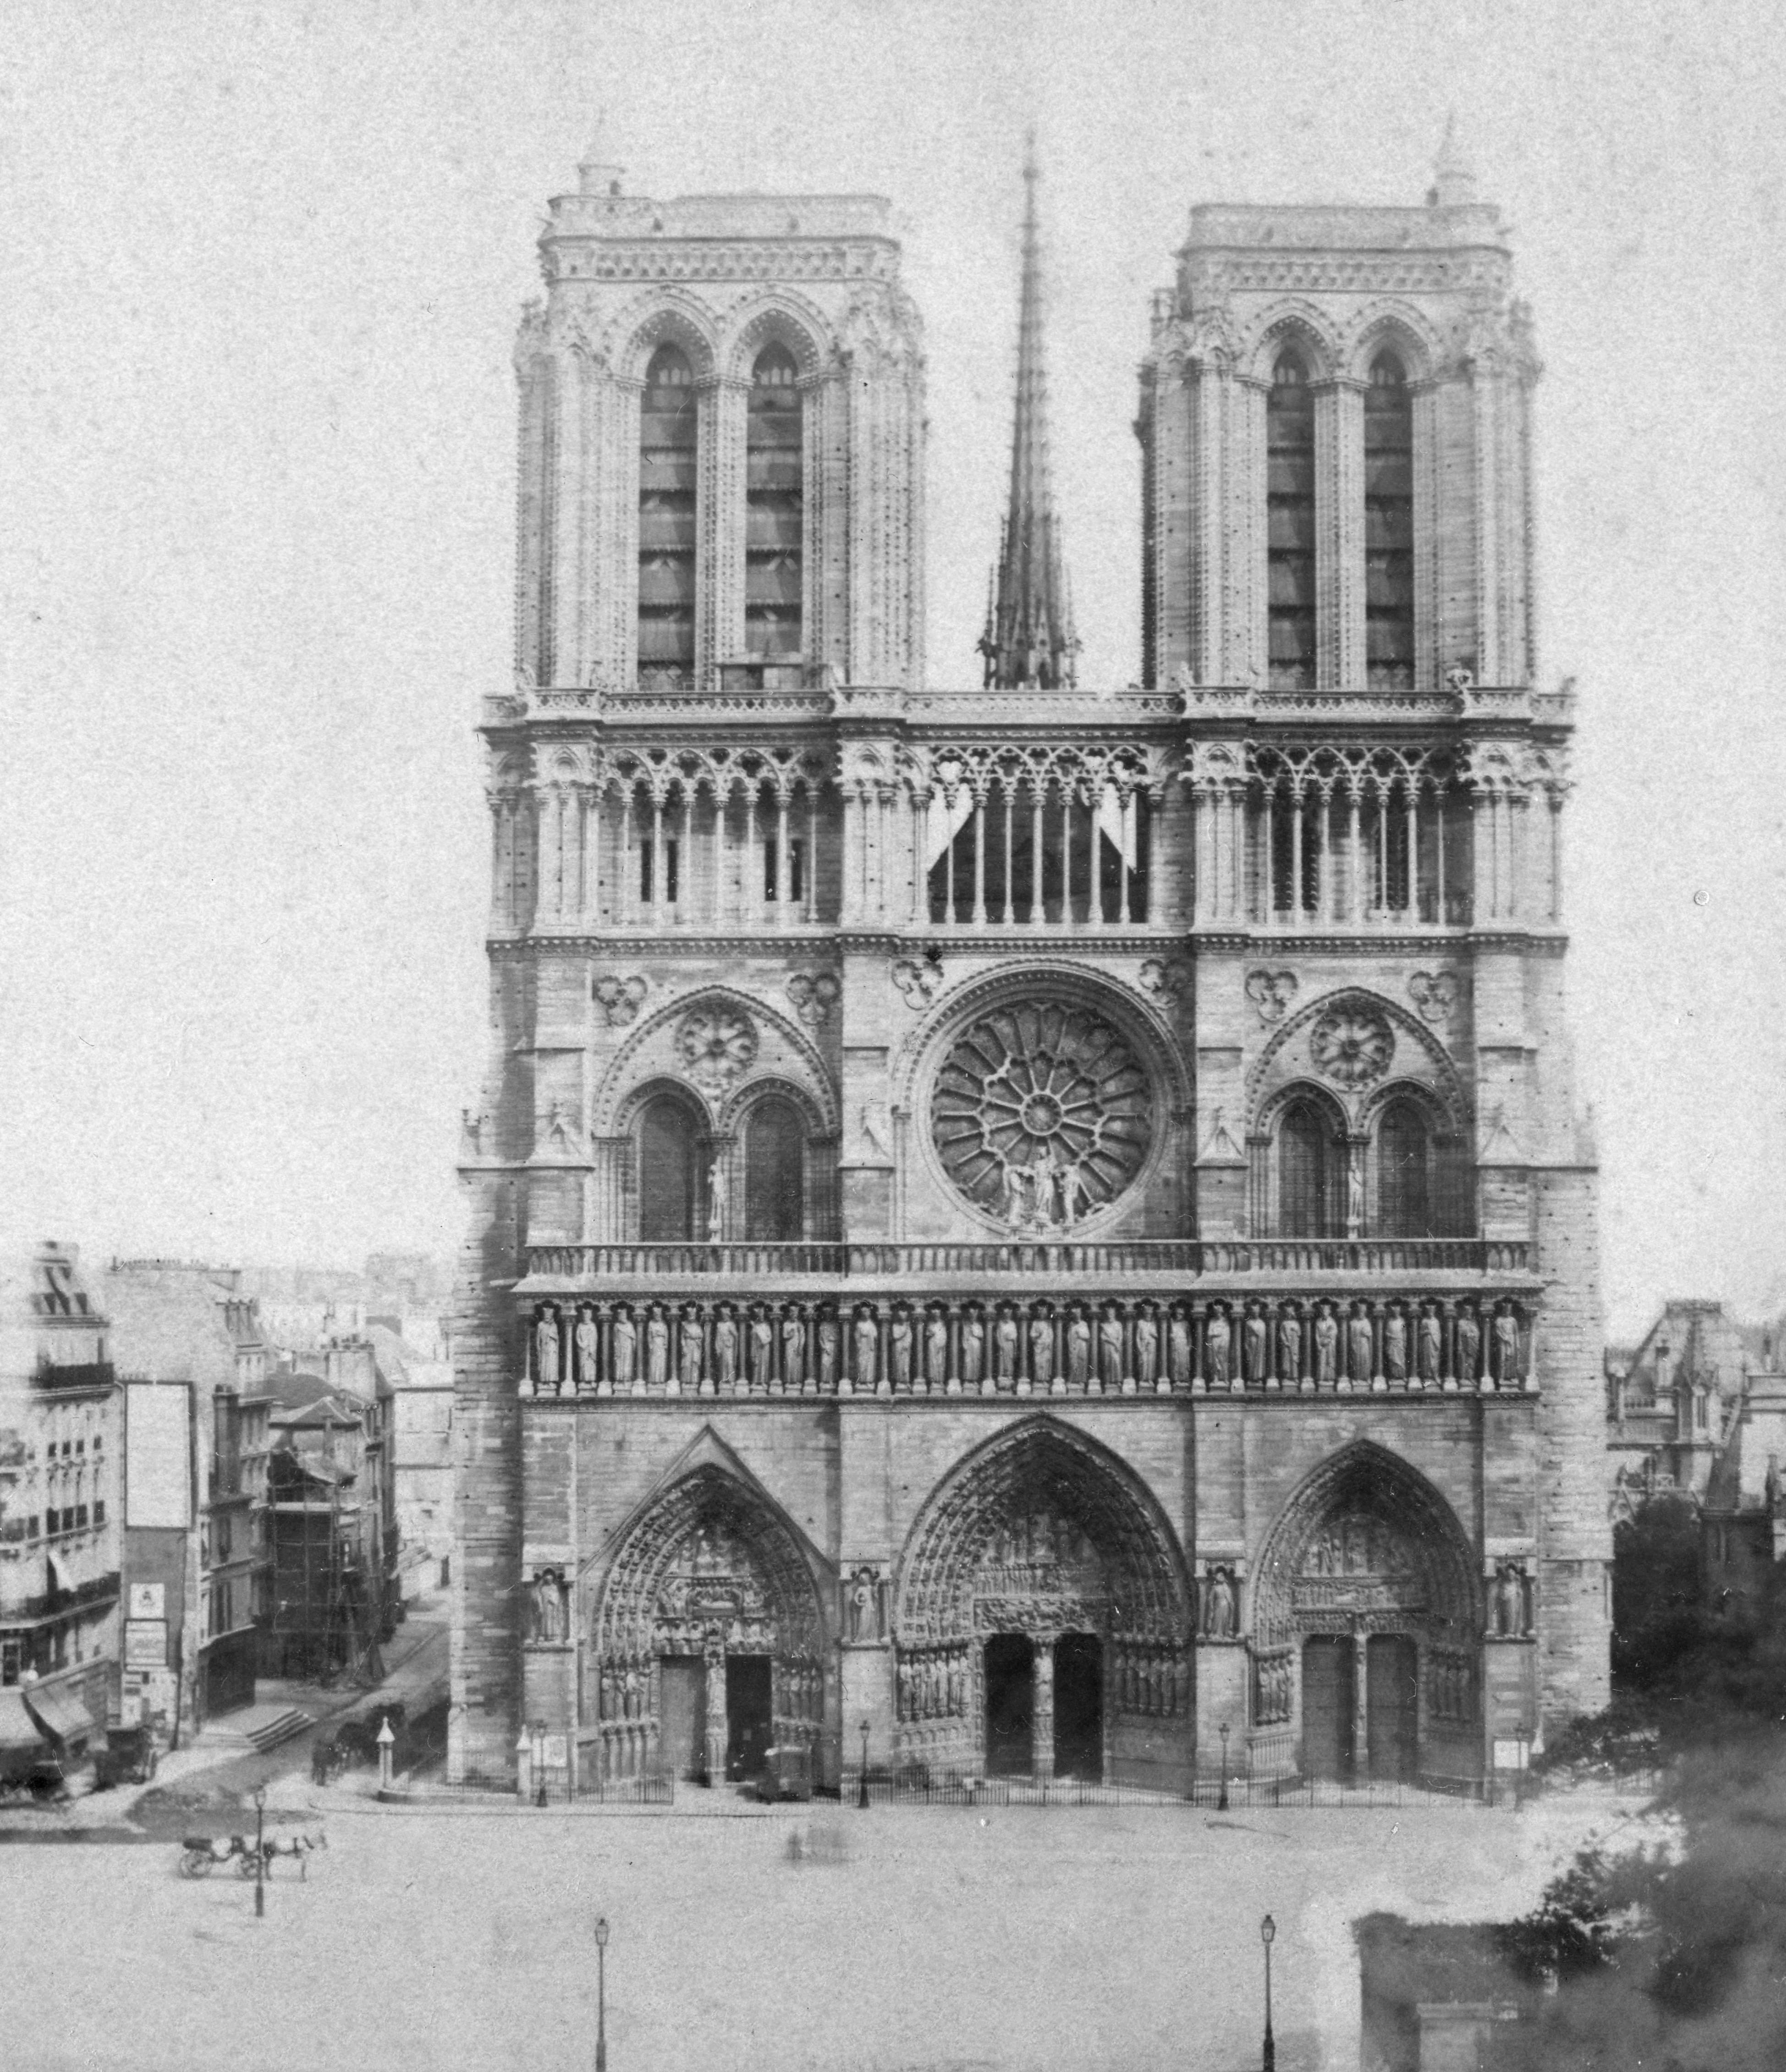 Slide 31 of 55: Notre Dame de Paris, France, late 19th or early 20th century. The Gothic Cathedral of Notre Dame de Paris was begun in the 12th century. The western facade was built between c1200 and 1225. Stereoscopic card. Detail. (Photo by The Print Collector/Print Collector/Getty Images)